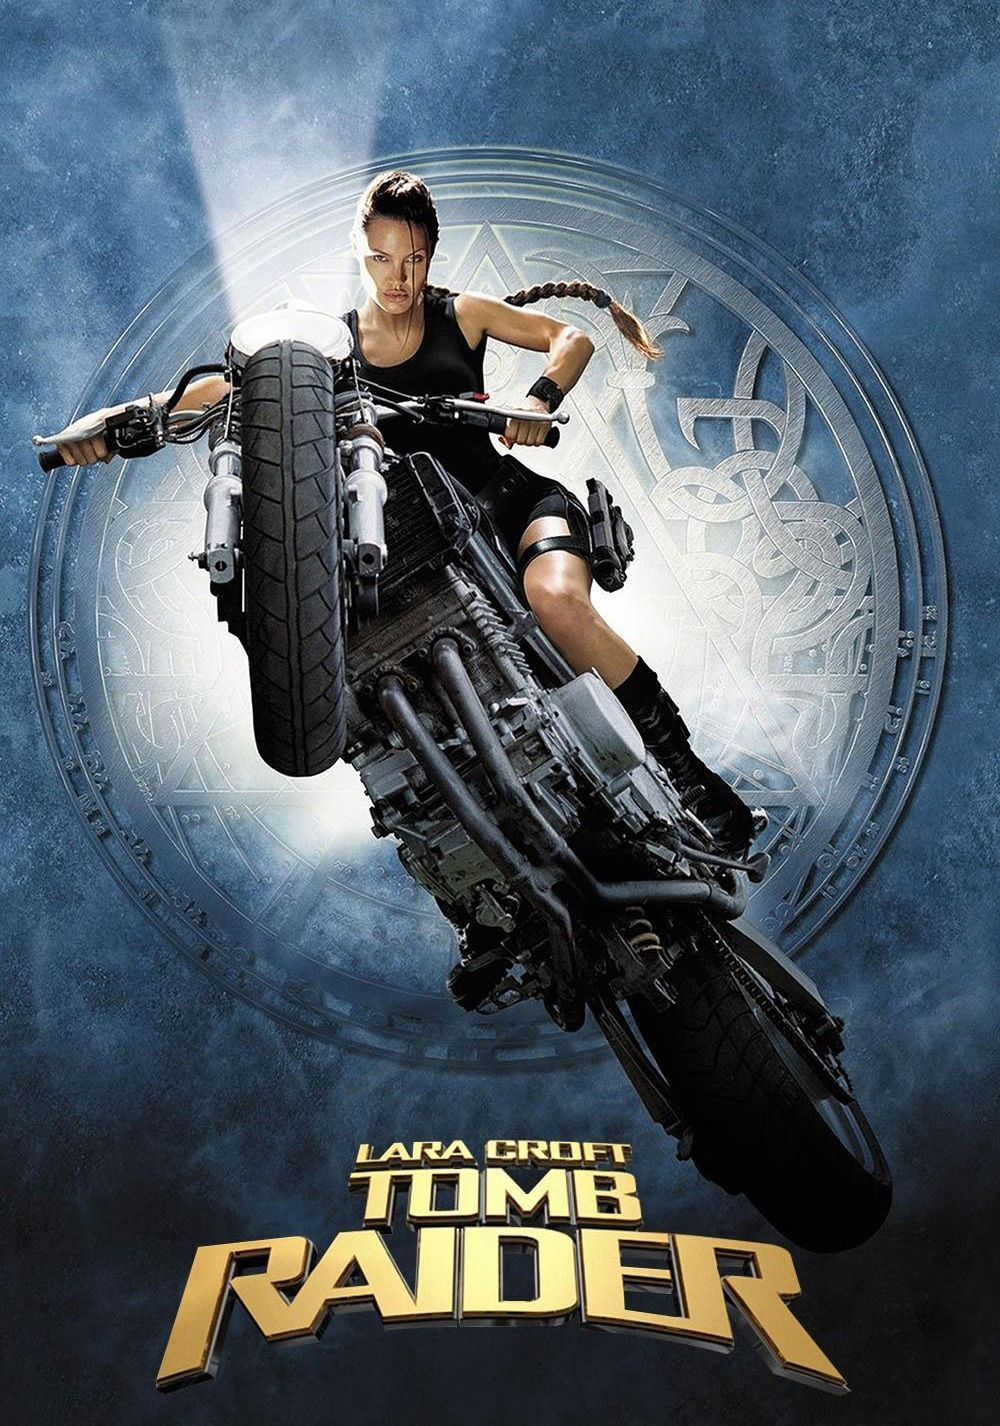 Lara Croft Tomb Raider Movie Poster Yahoo Image Search Results